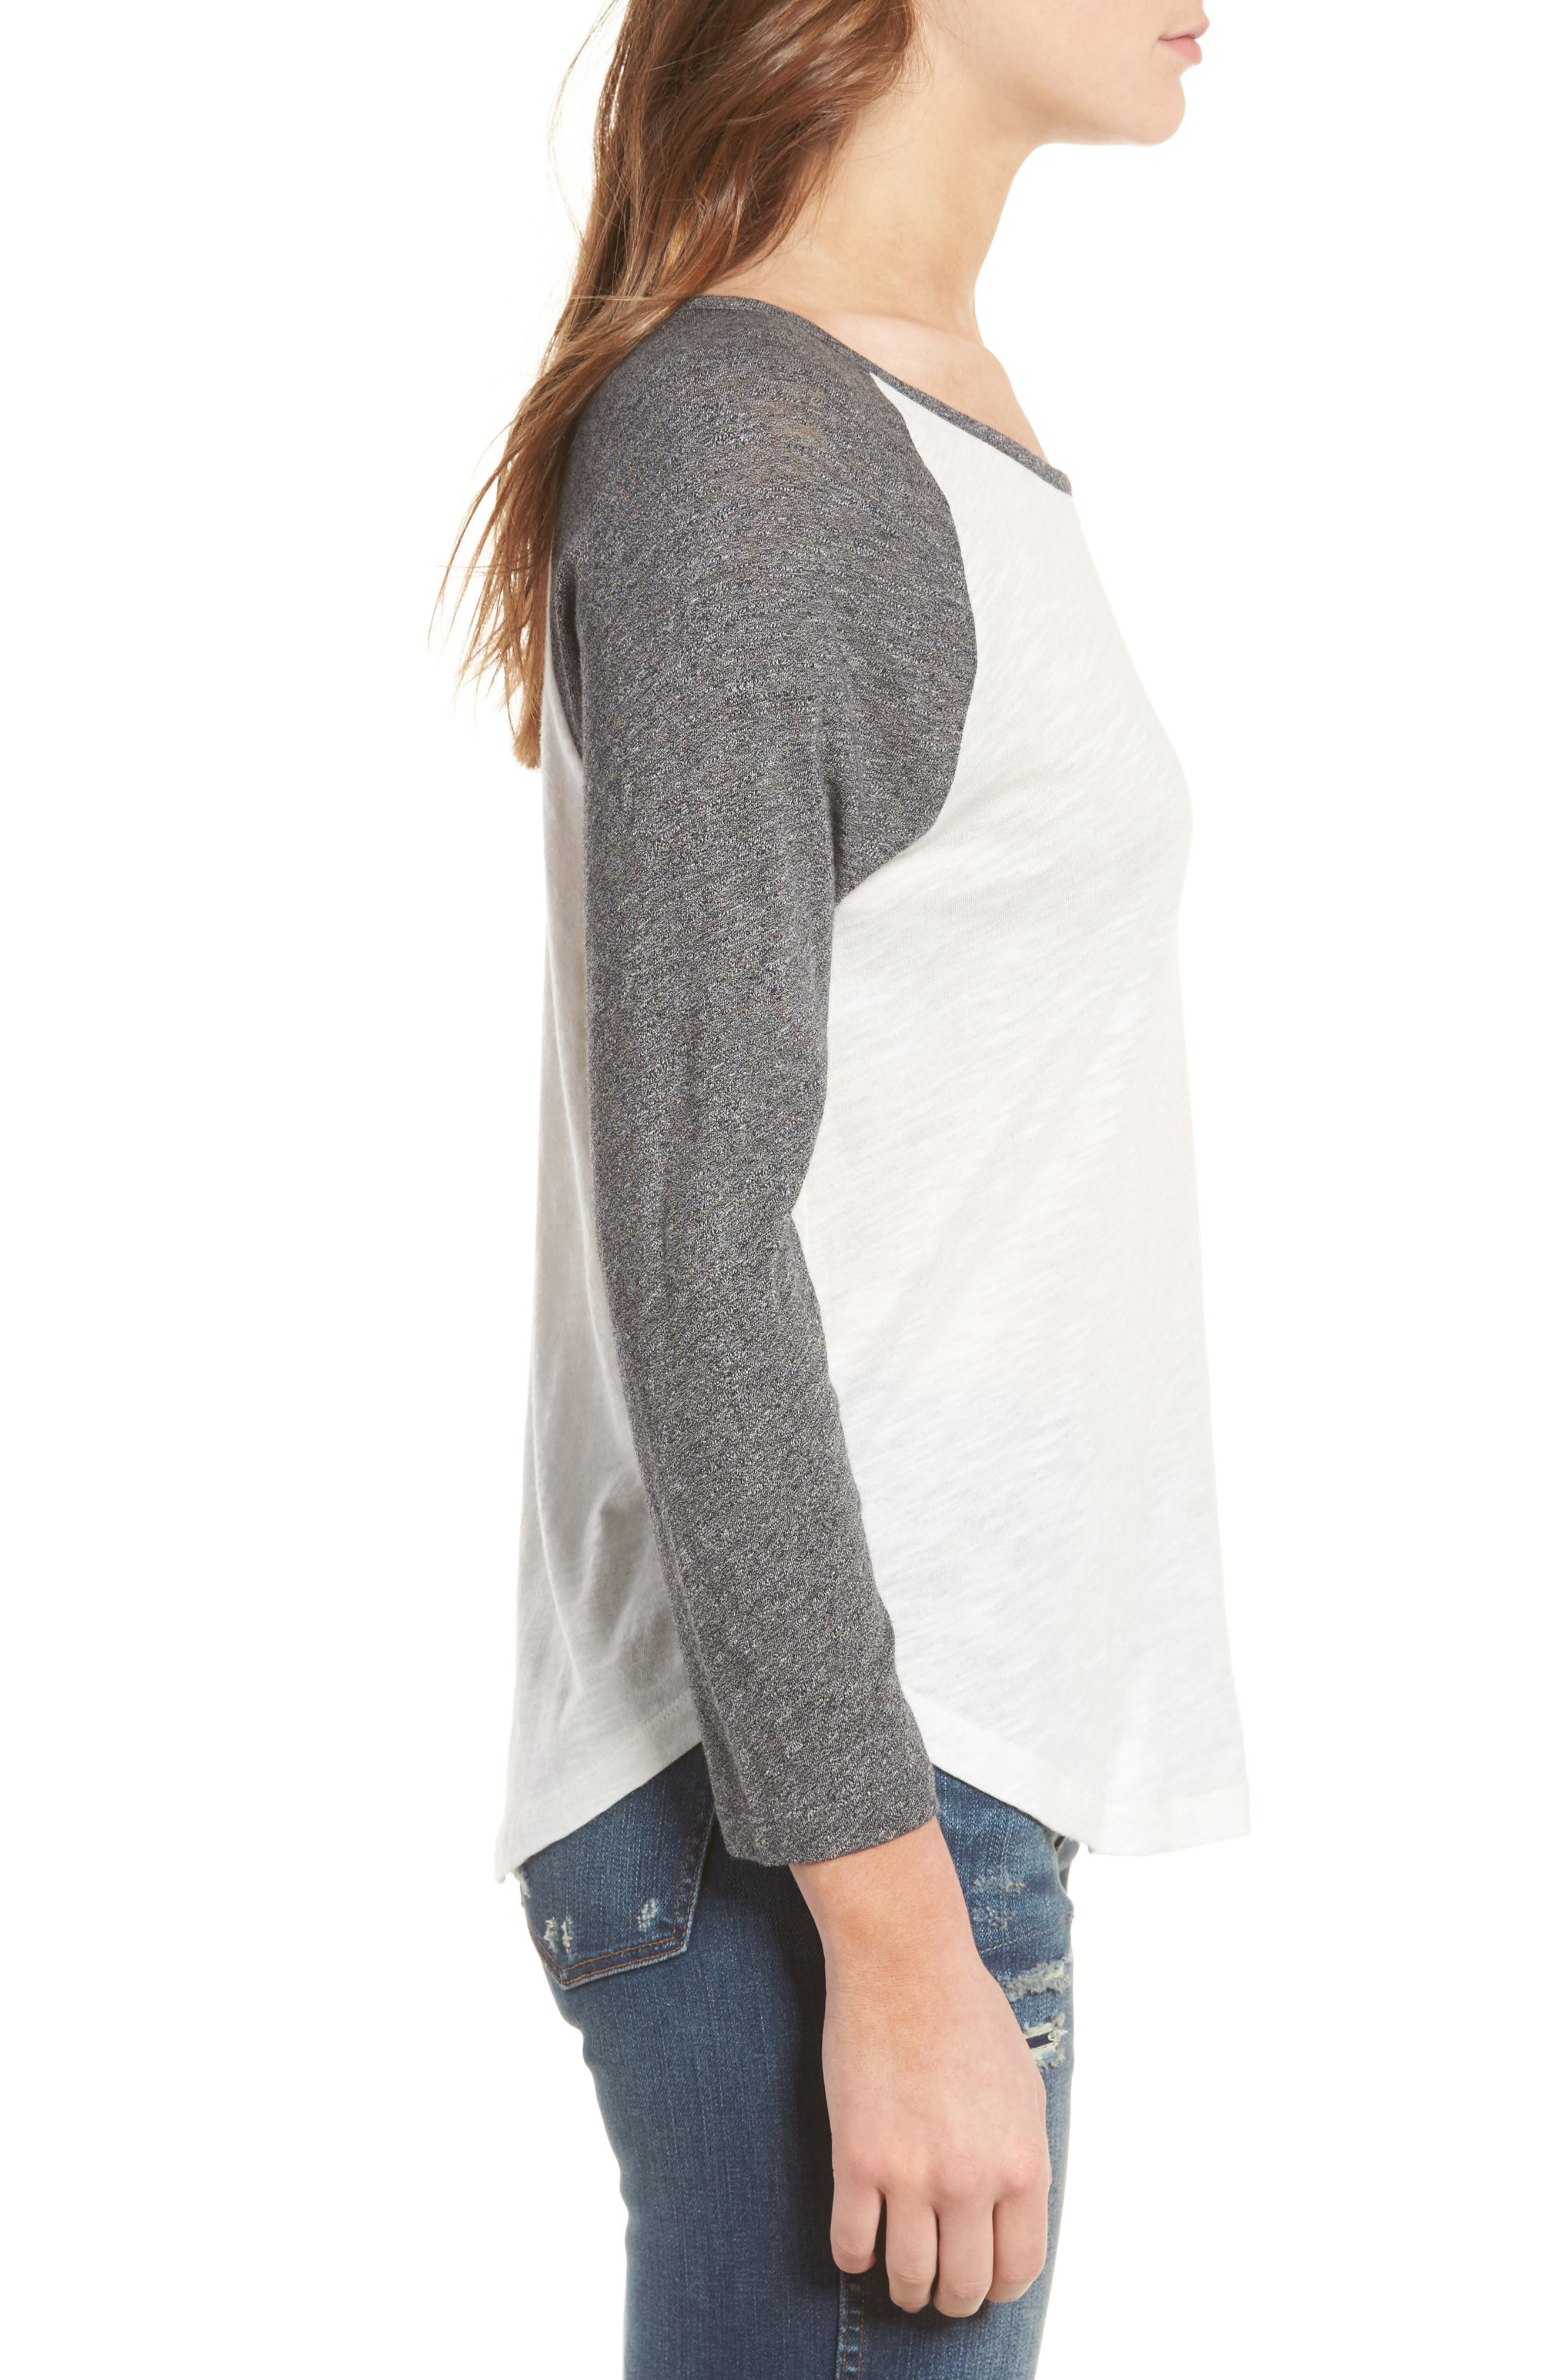 MADEWELL,                             Baseball Tee,                             Alternate thumbnail 3, color,                             021